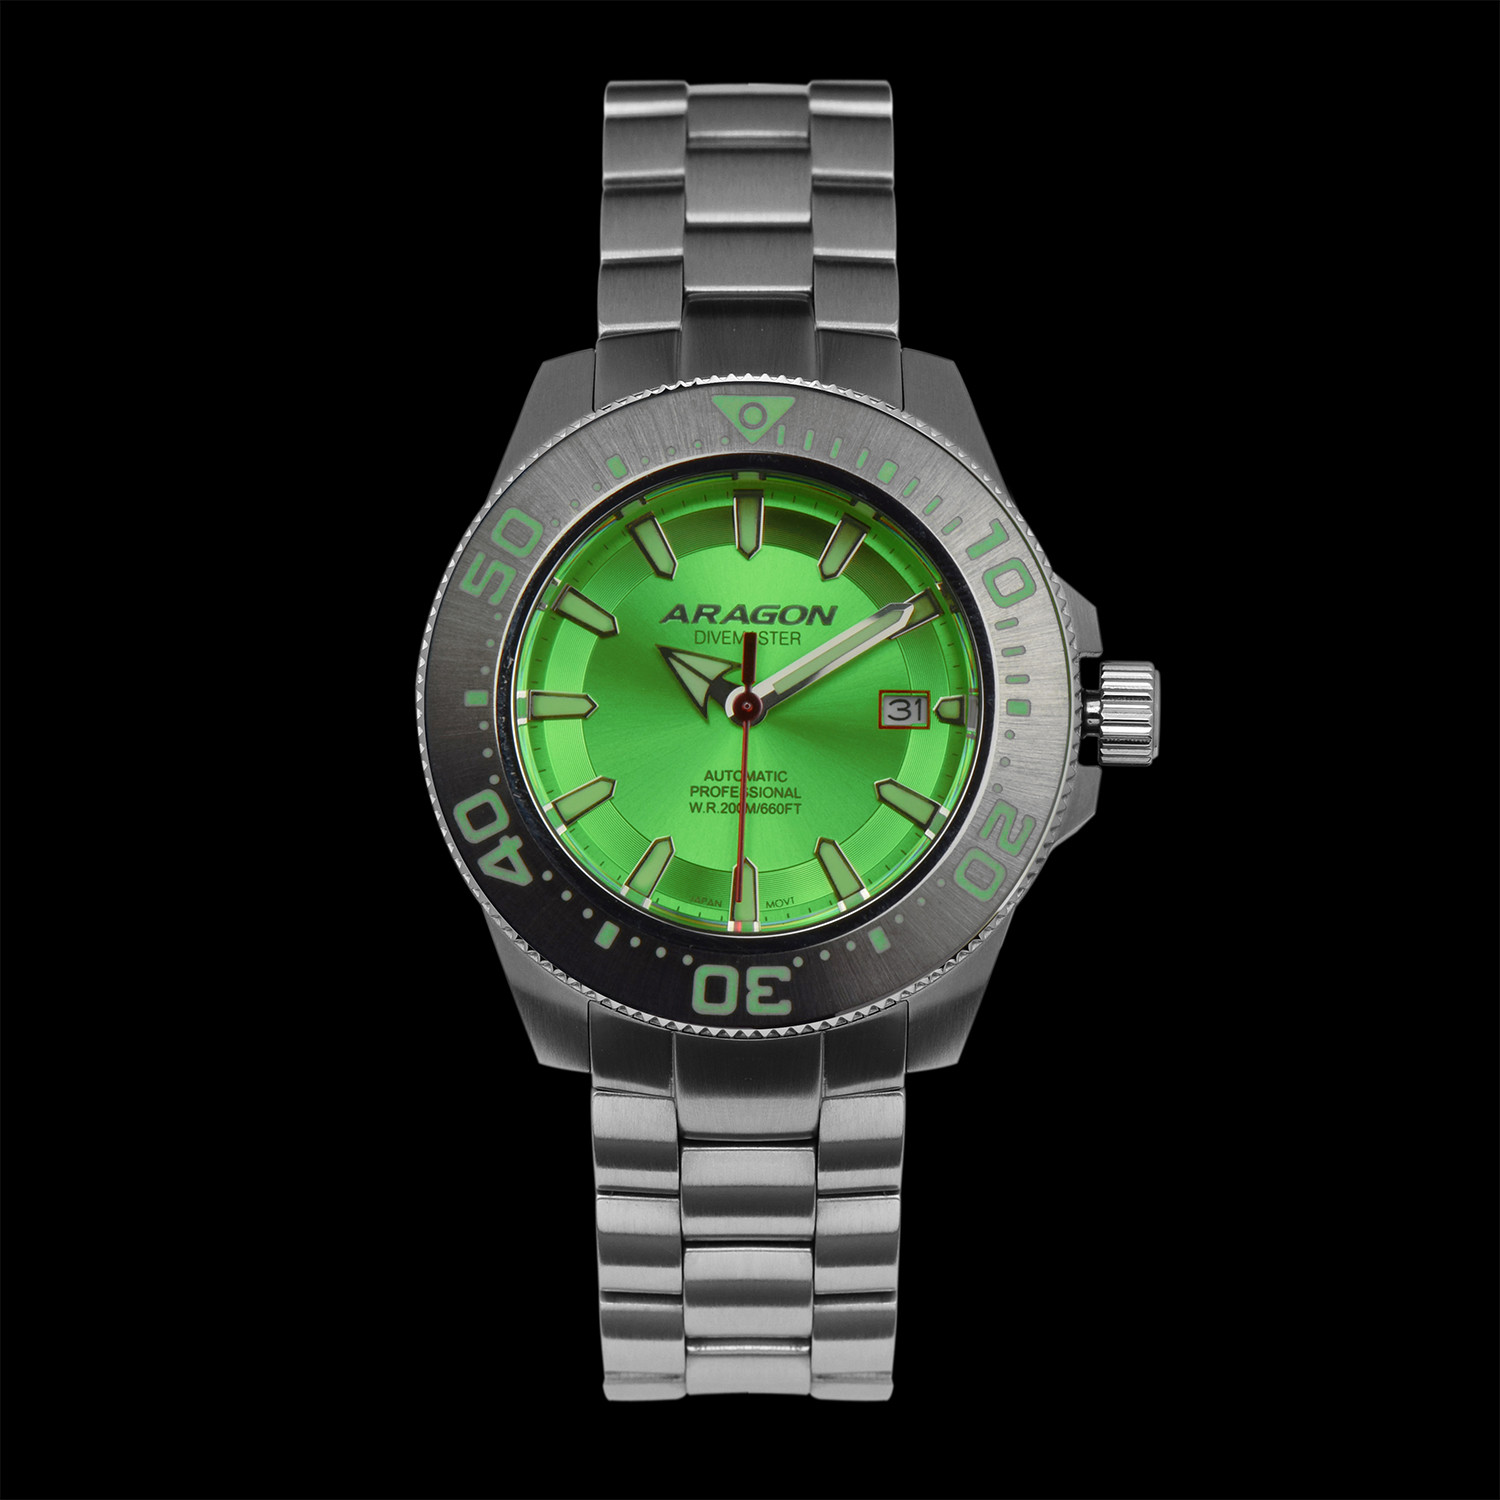 divemaster am com reveiw watch gruppo nov watches gamma watchreport photo